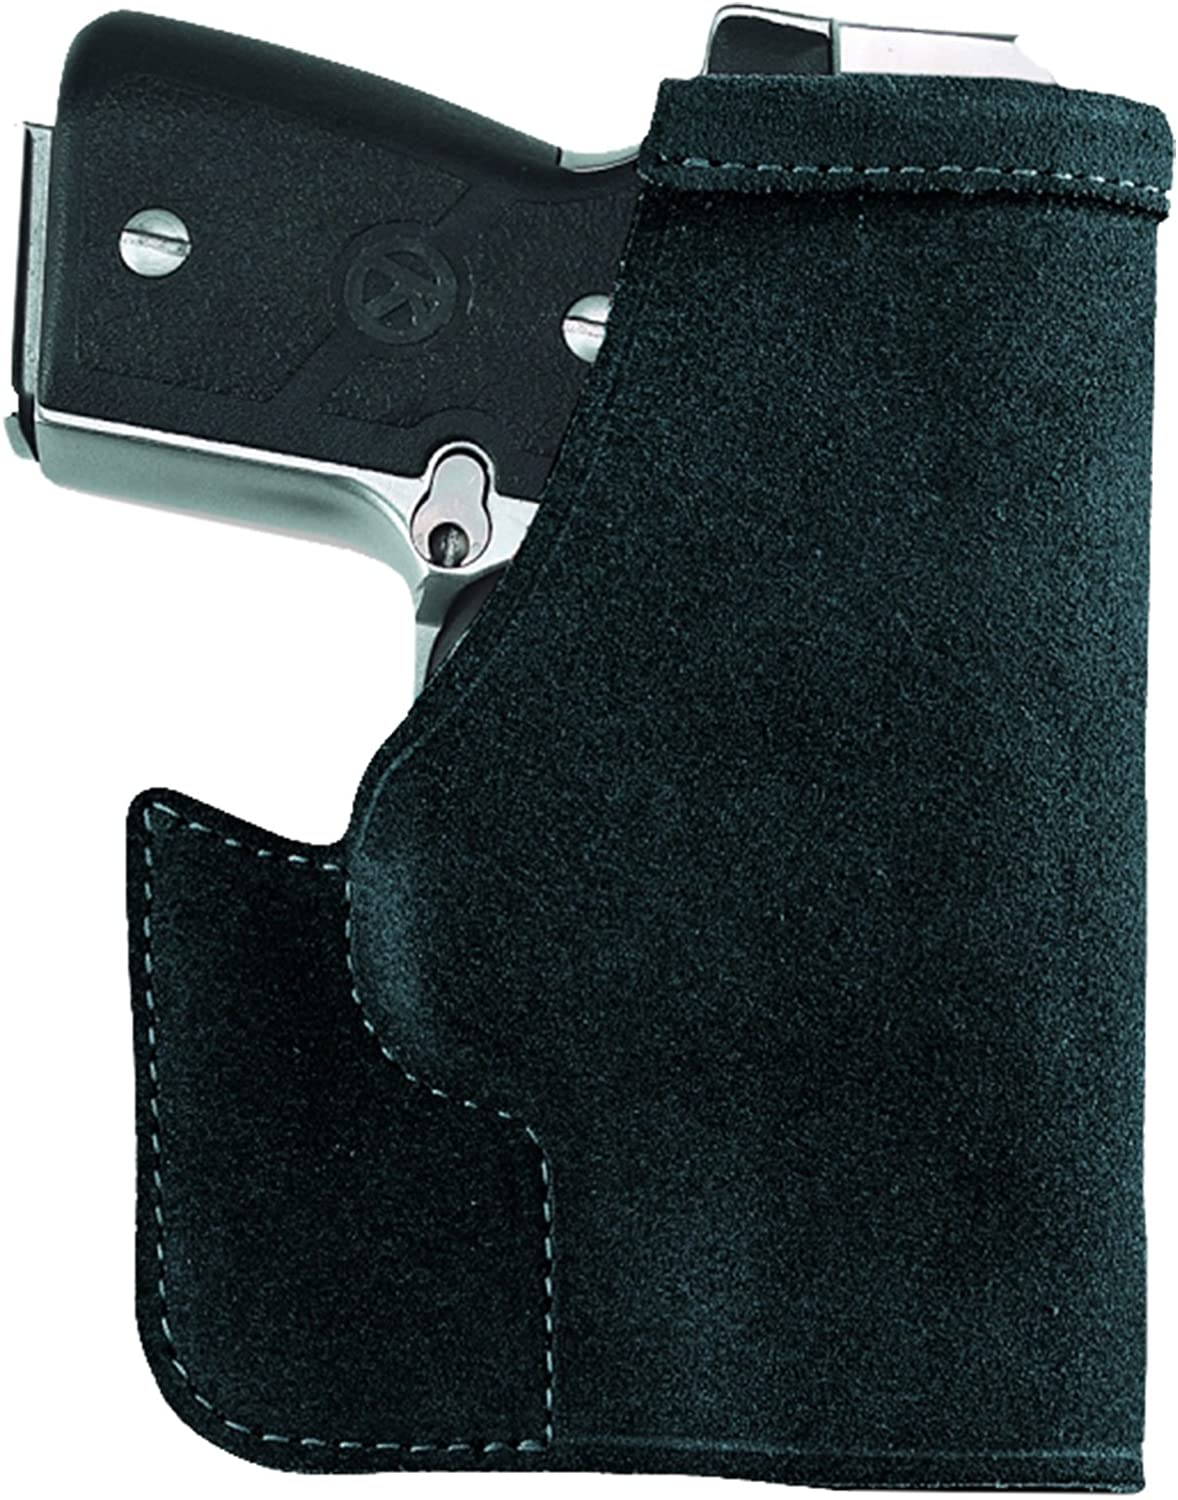 Proudly Made in USA Kimber Solo CarryOUTBAGS Nylon Front Pocket Holster